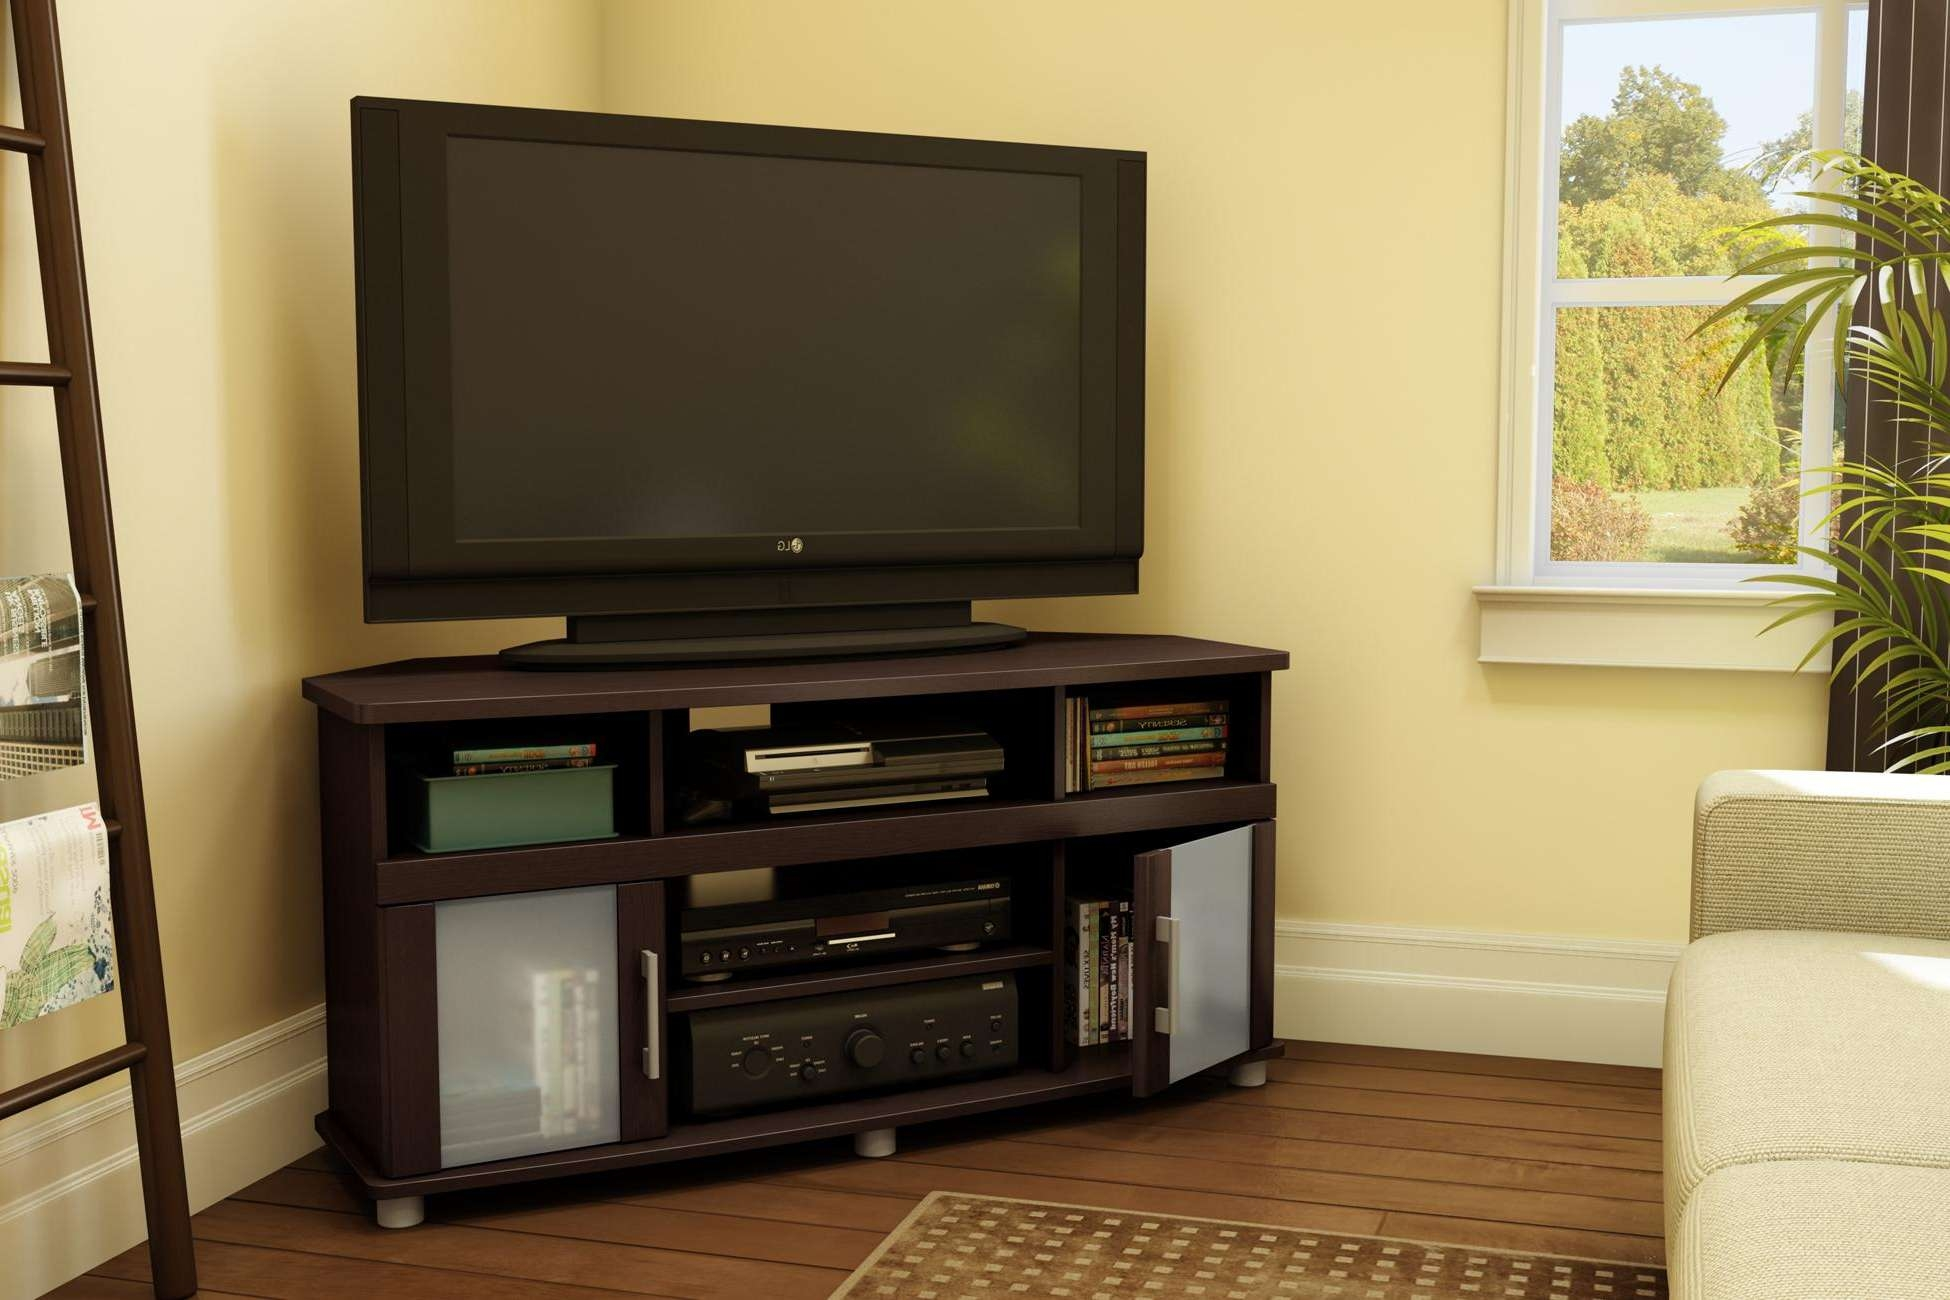 Storage Cabinets Ideas : Corner Tv Stand Glass Choosing The Sizes Intended For Corner Tv Cabinets With Glass Doors (View 9 of 20)